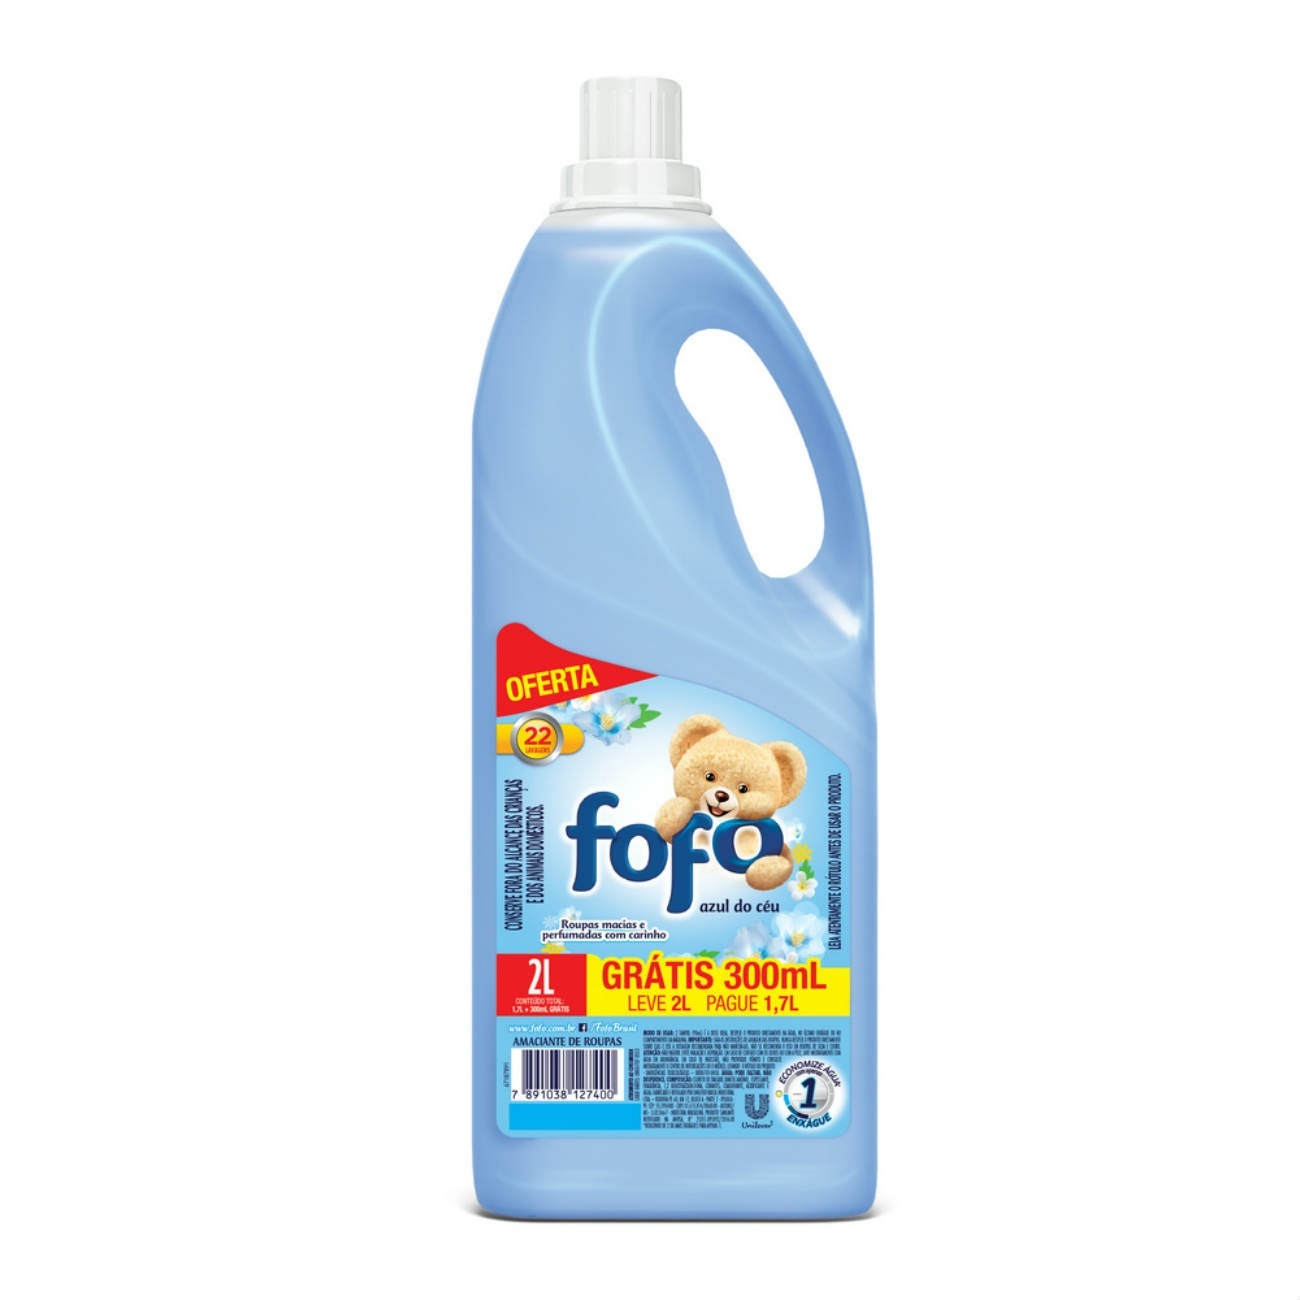 Oferta Amaciante Dilu�do Fofo Azul do C�u 2L